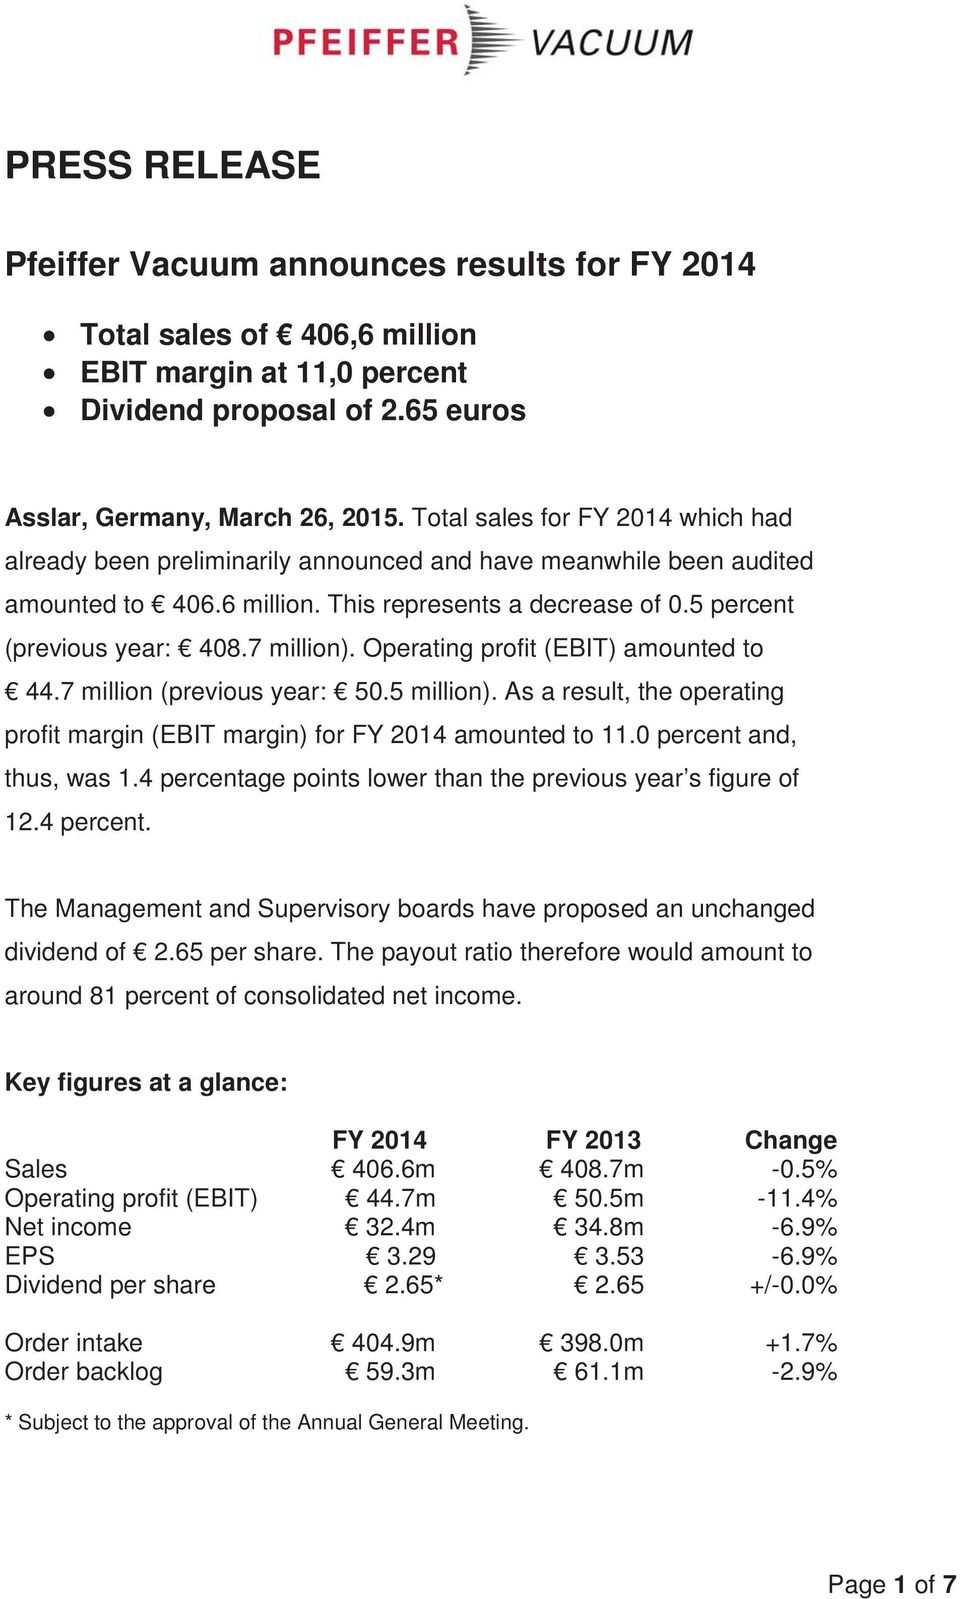 7 million). Operating profit (EBIT) amounted to 44.7 million (previous year: 50.5 million). As a result, the operating profit margin (EBIT margin) for FY 2014 amounted to 11.